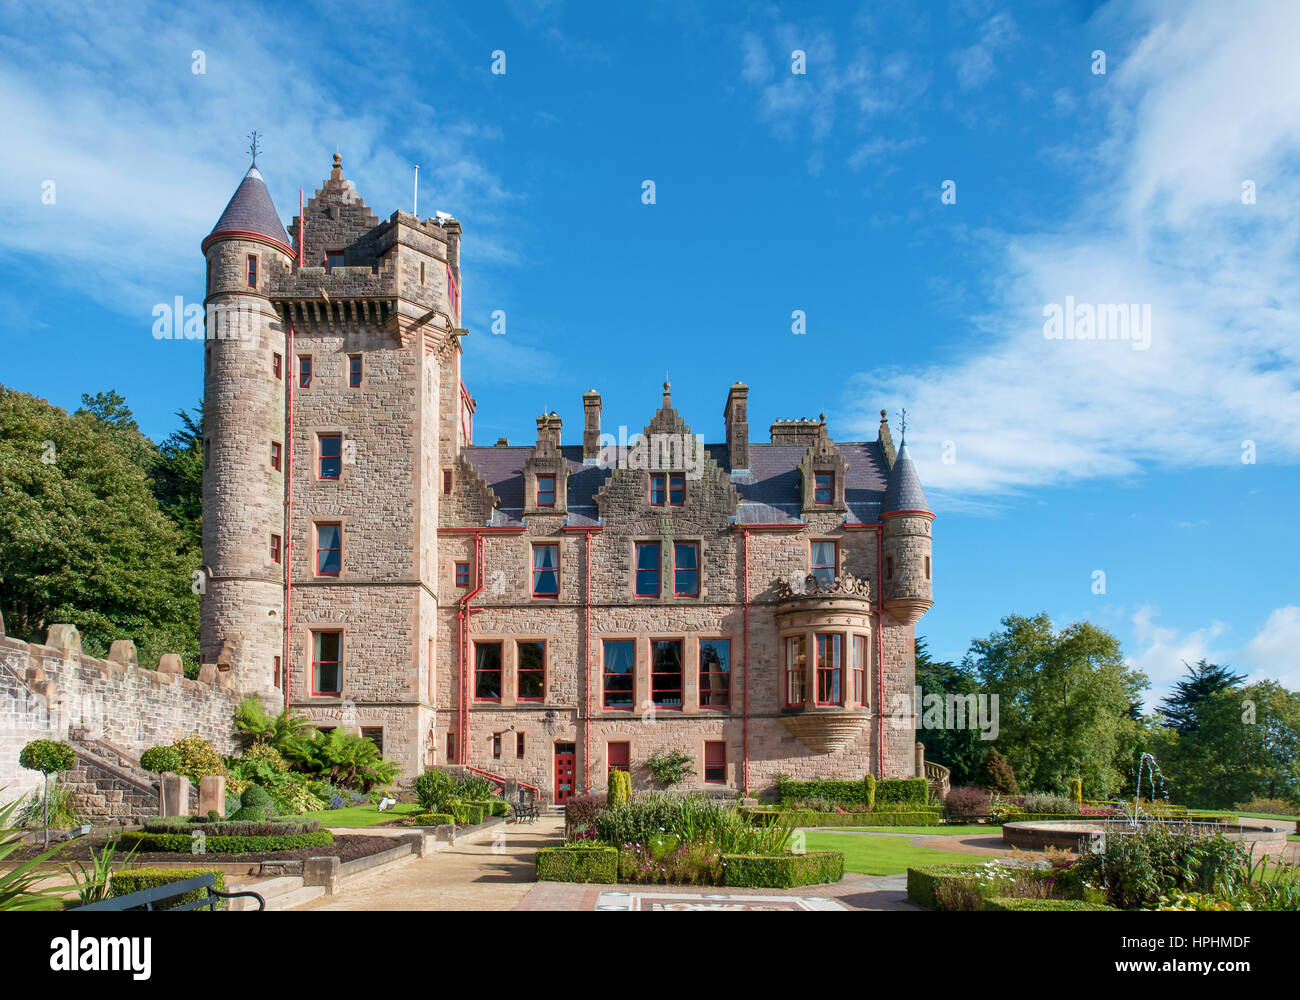 Belfast castle. Tourist attraction on the slopes of Cavehill Country Park in Belfast, Northern Ireland - Stock Image